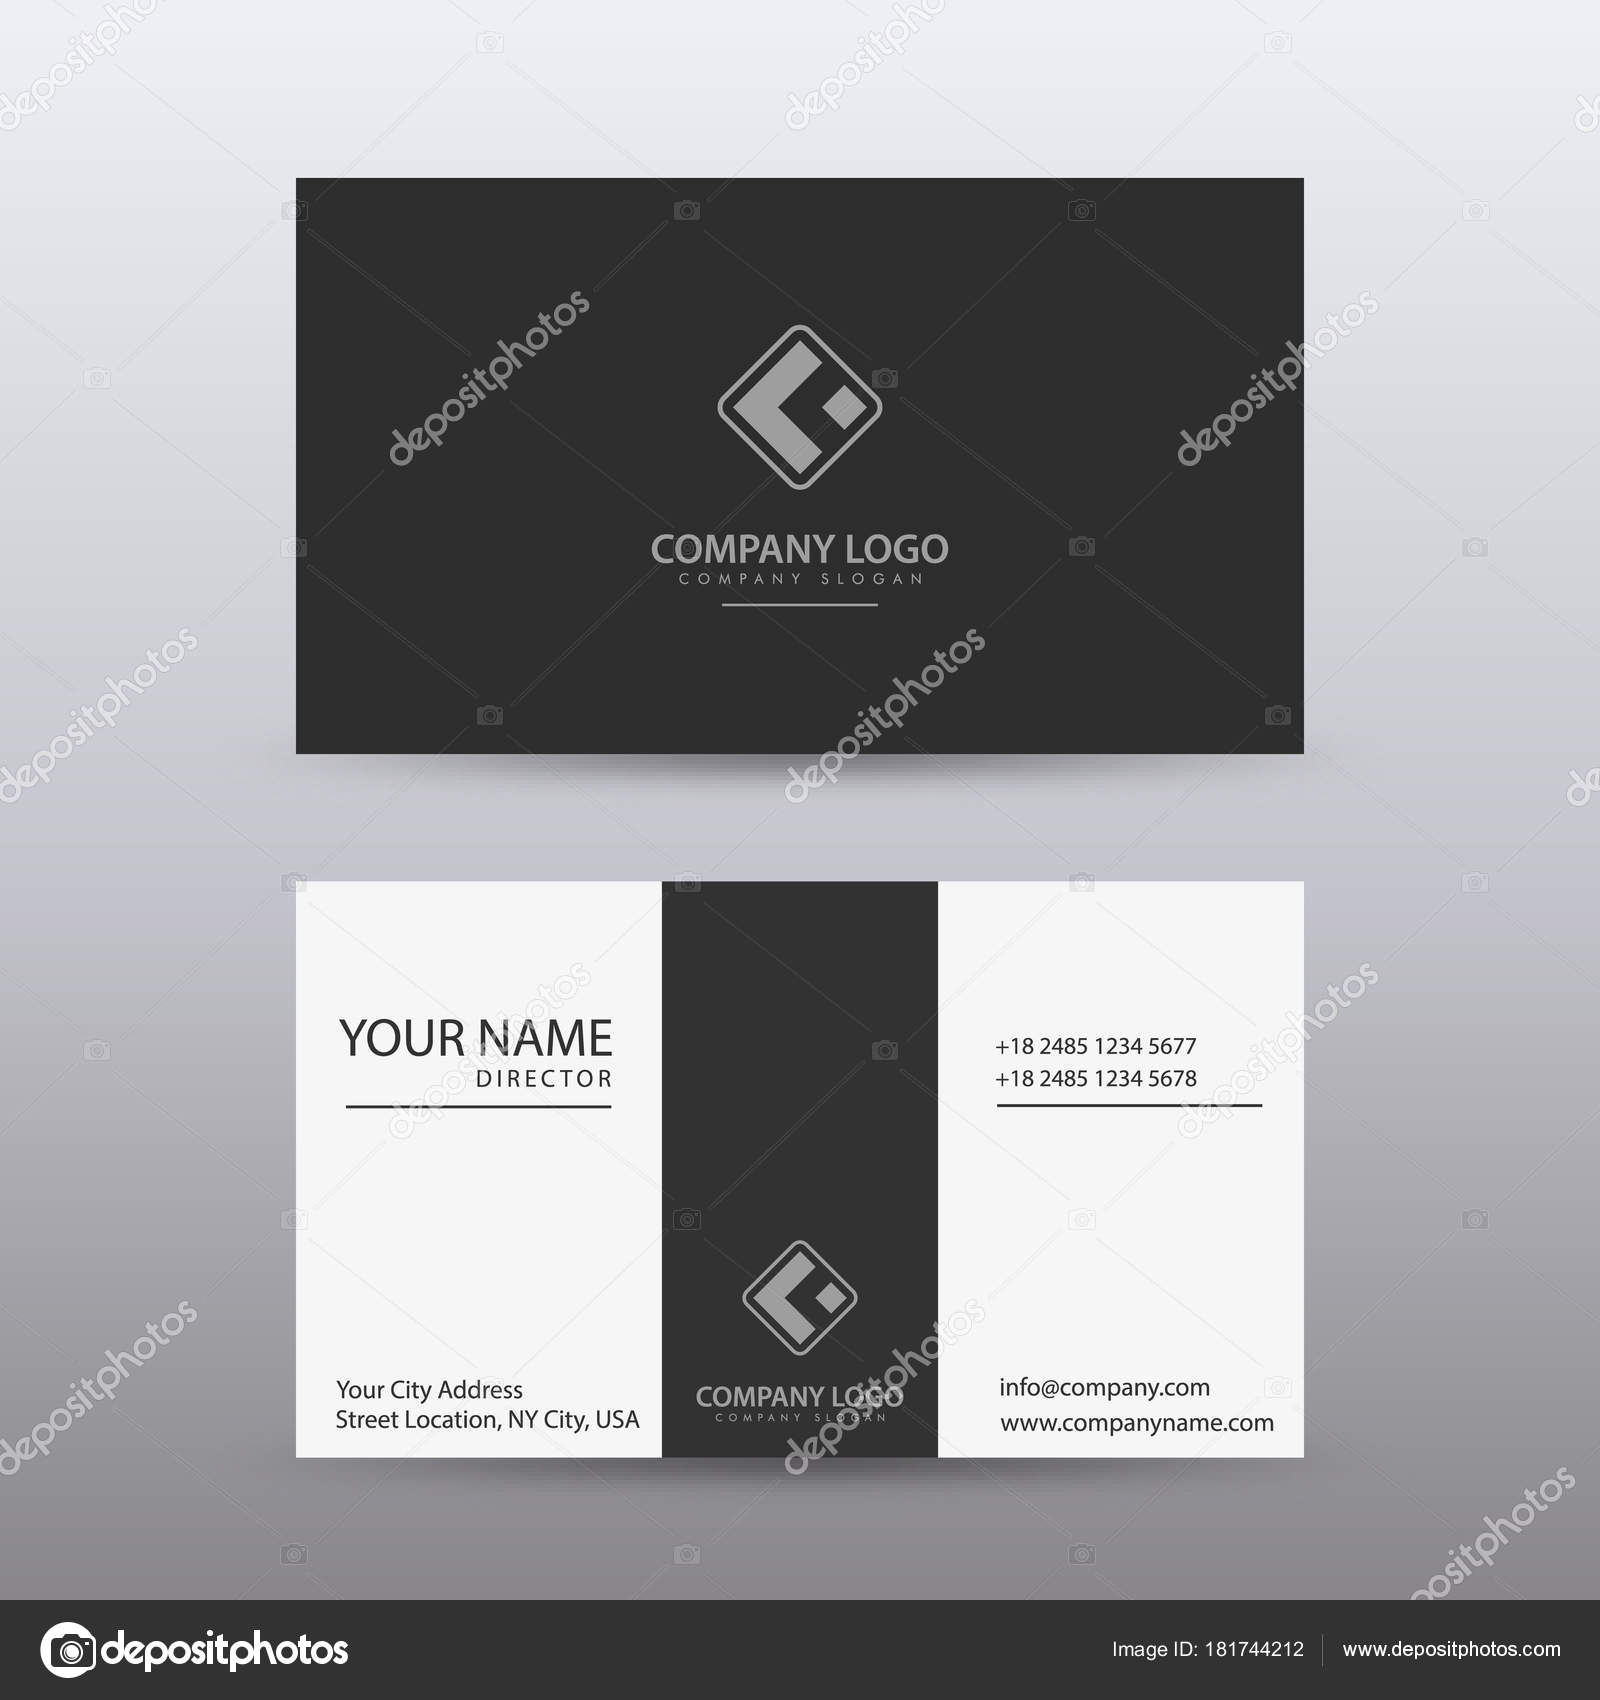 Modern creative and clean business card template with dark color modern creative and clean business card template with dark color stock vector colourmoves